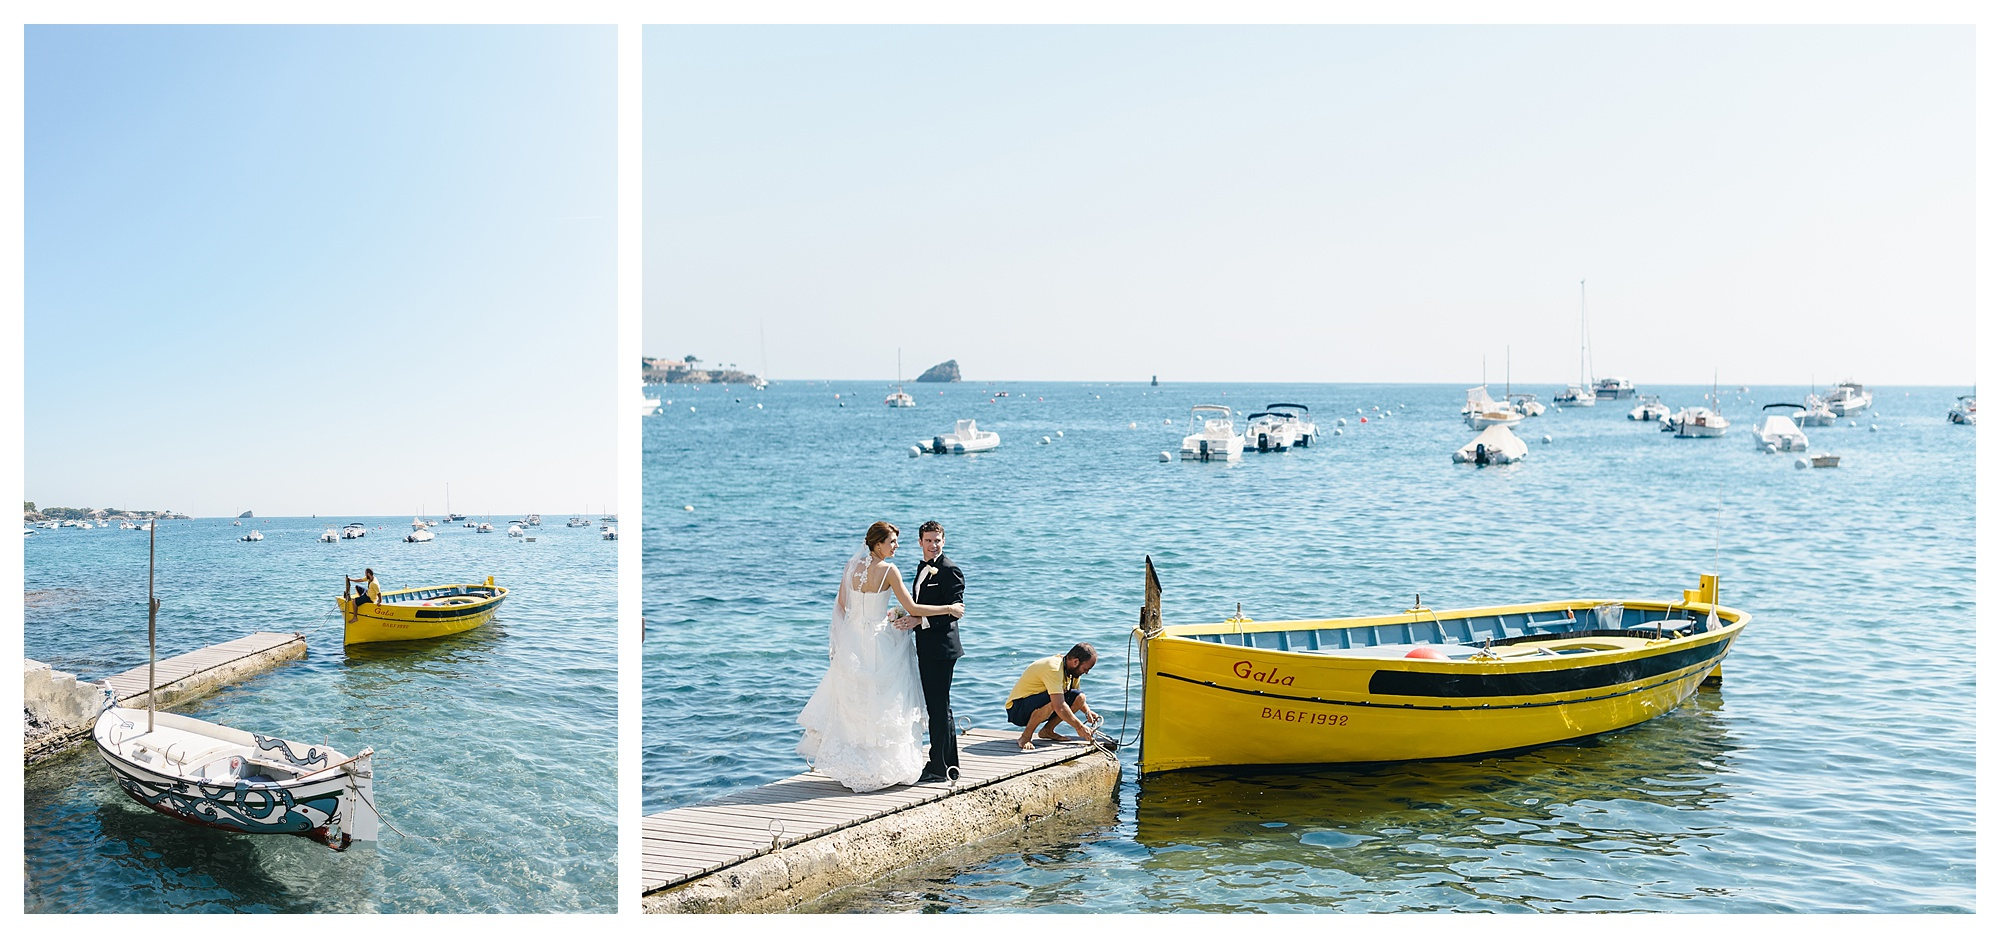 Fotograf Konstanz - Wedding Spain Cadaques Elmar Feuerbacher Photography 24 - Als Destination Wedding Fotograf in Cadaqués, Spanien  - 24 -